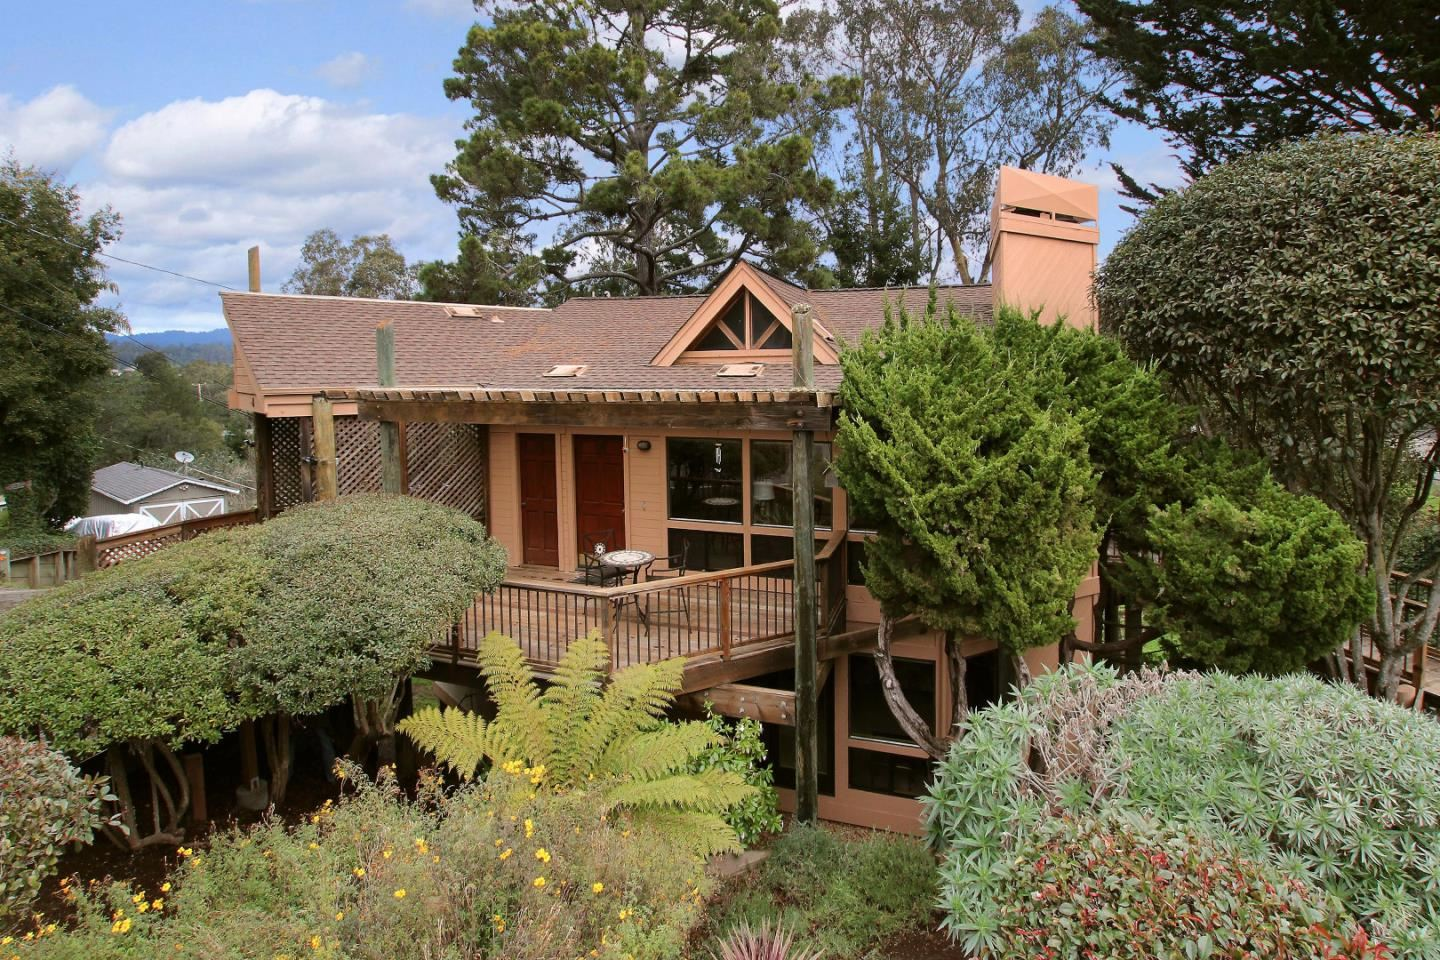 901 Vista Del Mar DR, Aptos, CA 95003 - #: ML81779539